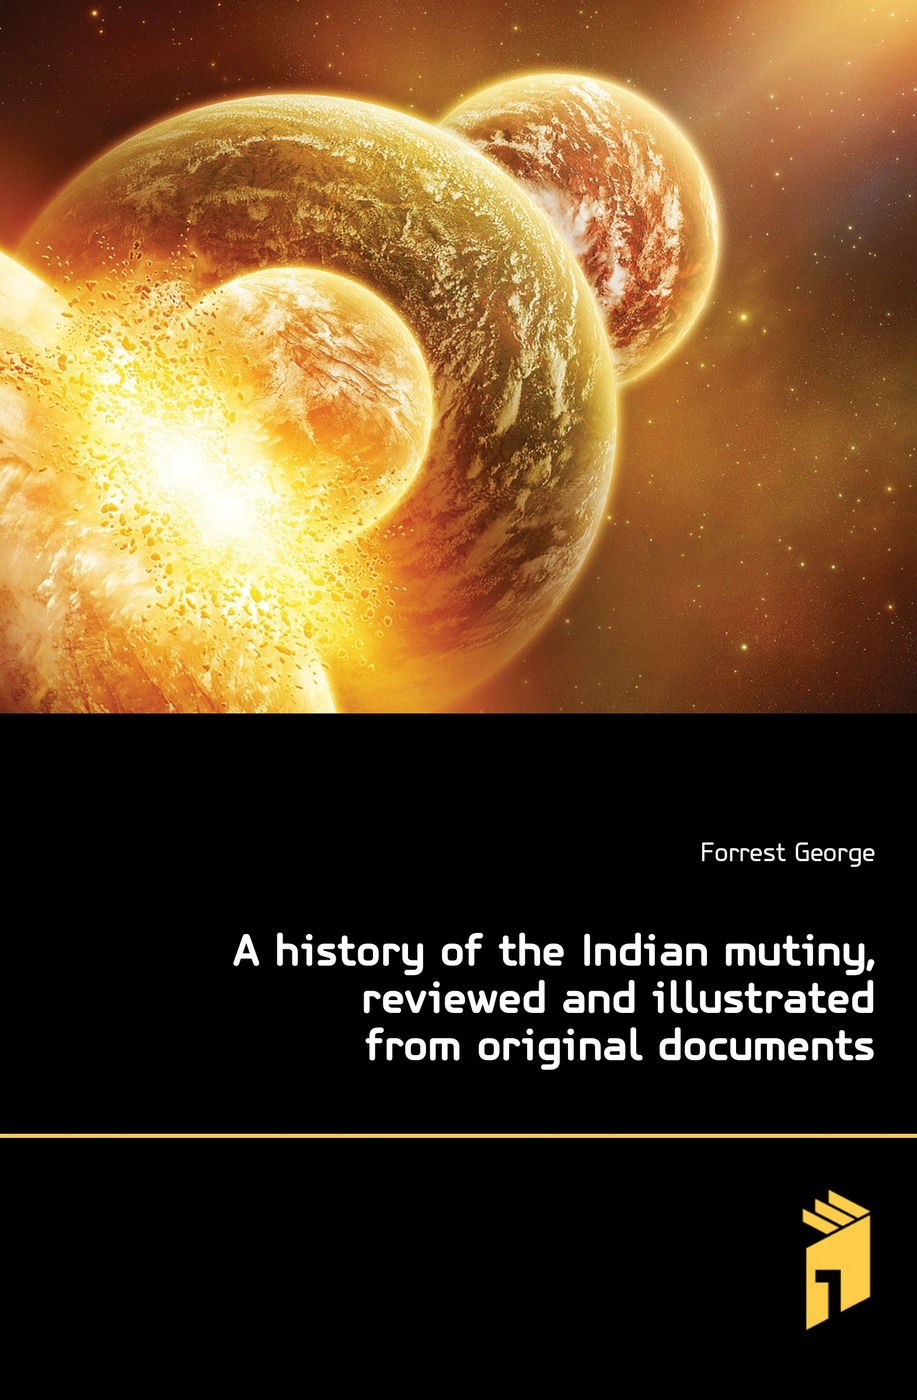 A history of the Indian mutiny, reviewed and illustrated from original documents